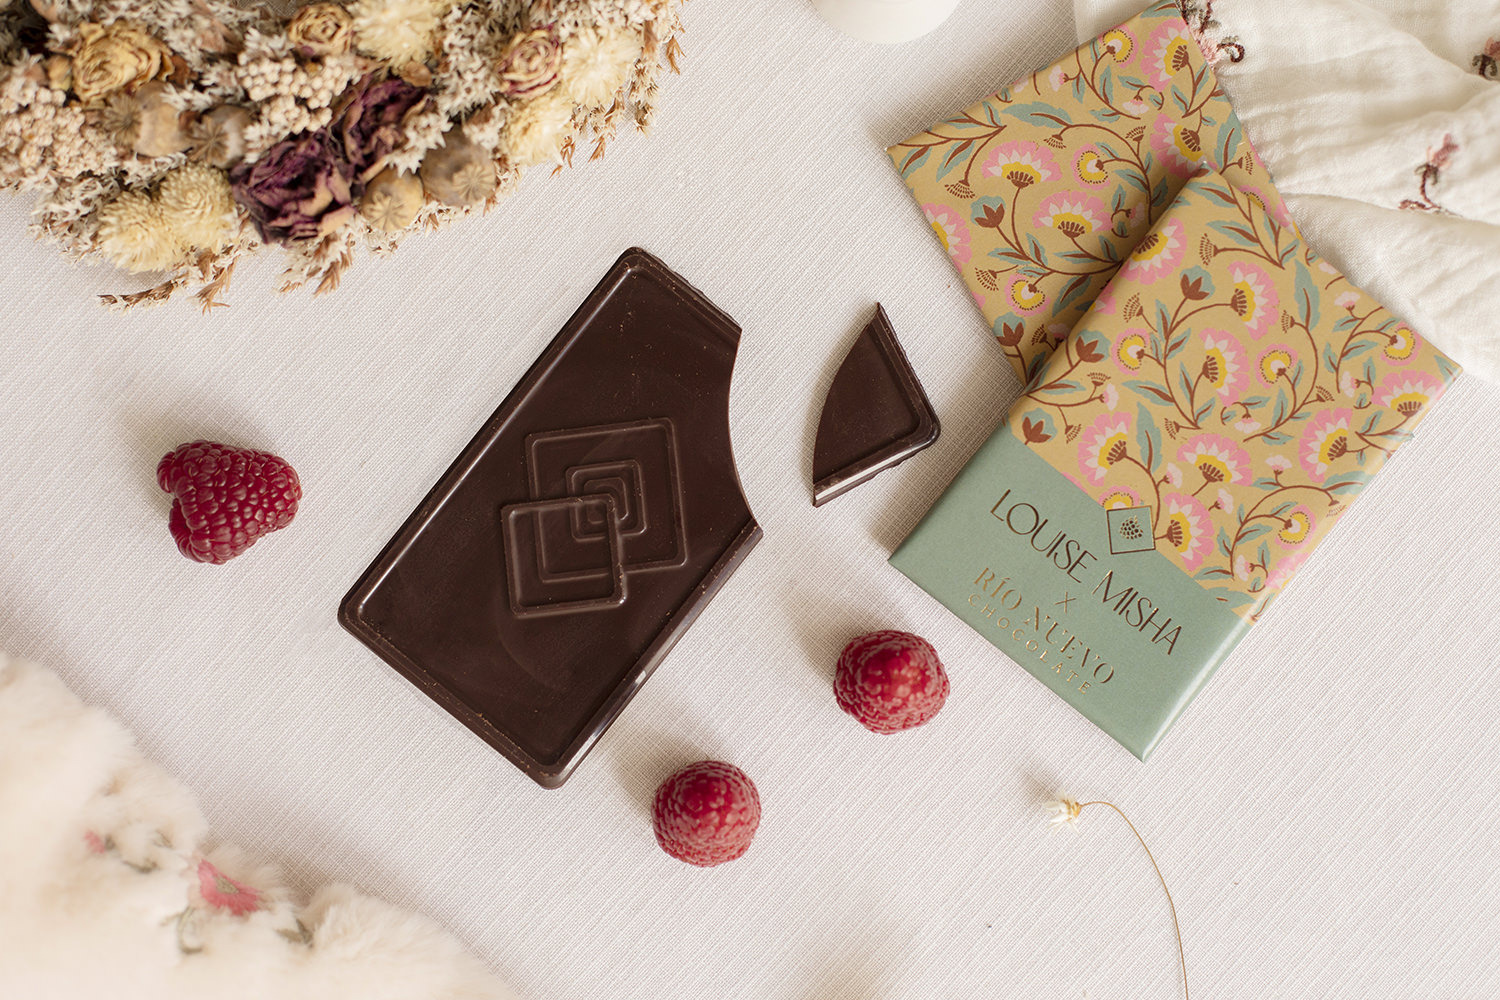 Our chocolate bars in collaboration with Rio Nuevo